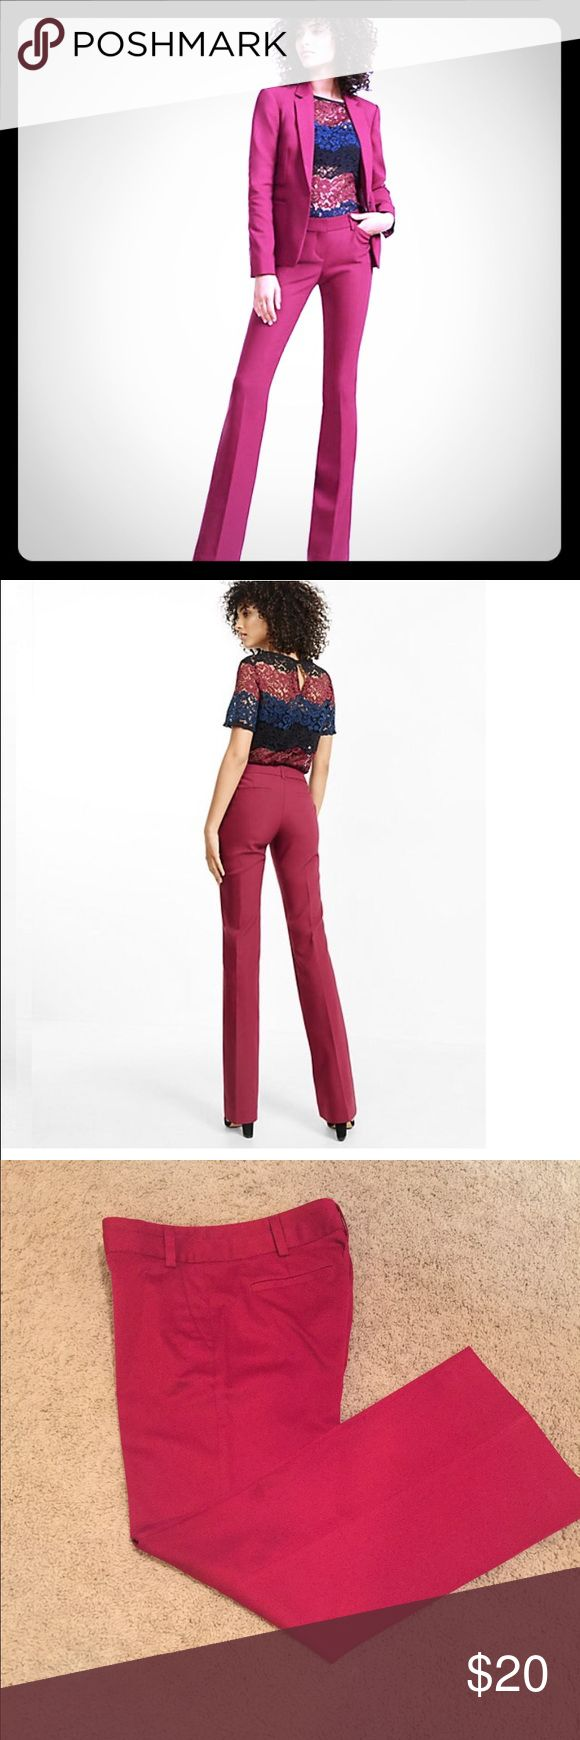 Express Editor Pant Flat-front Express Editor pant in oxblood red provide a fashion statement for fall. Wear with a silk Blouse and blazer, a sweater, or even a tank/t and Denim jacket. Elevate your work look with these on-trend trousers! Express Pants Trousers